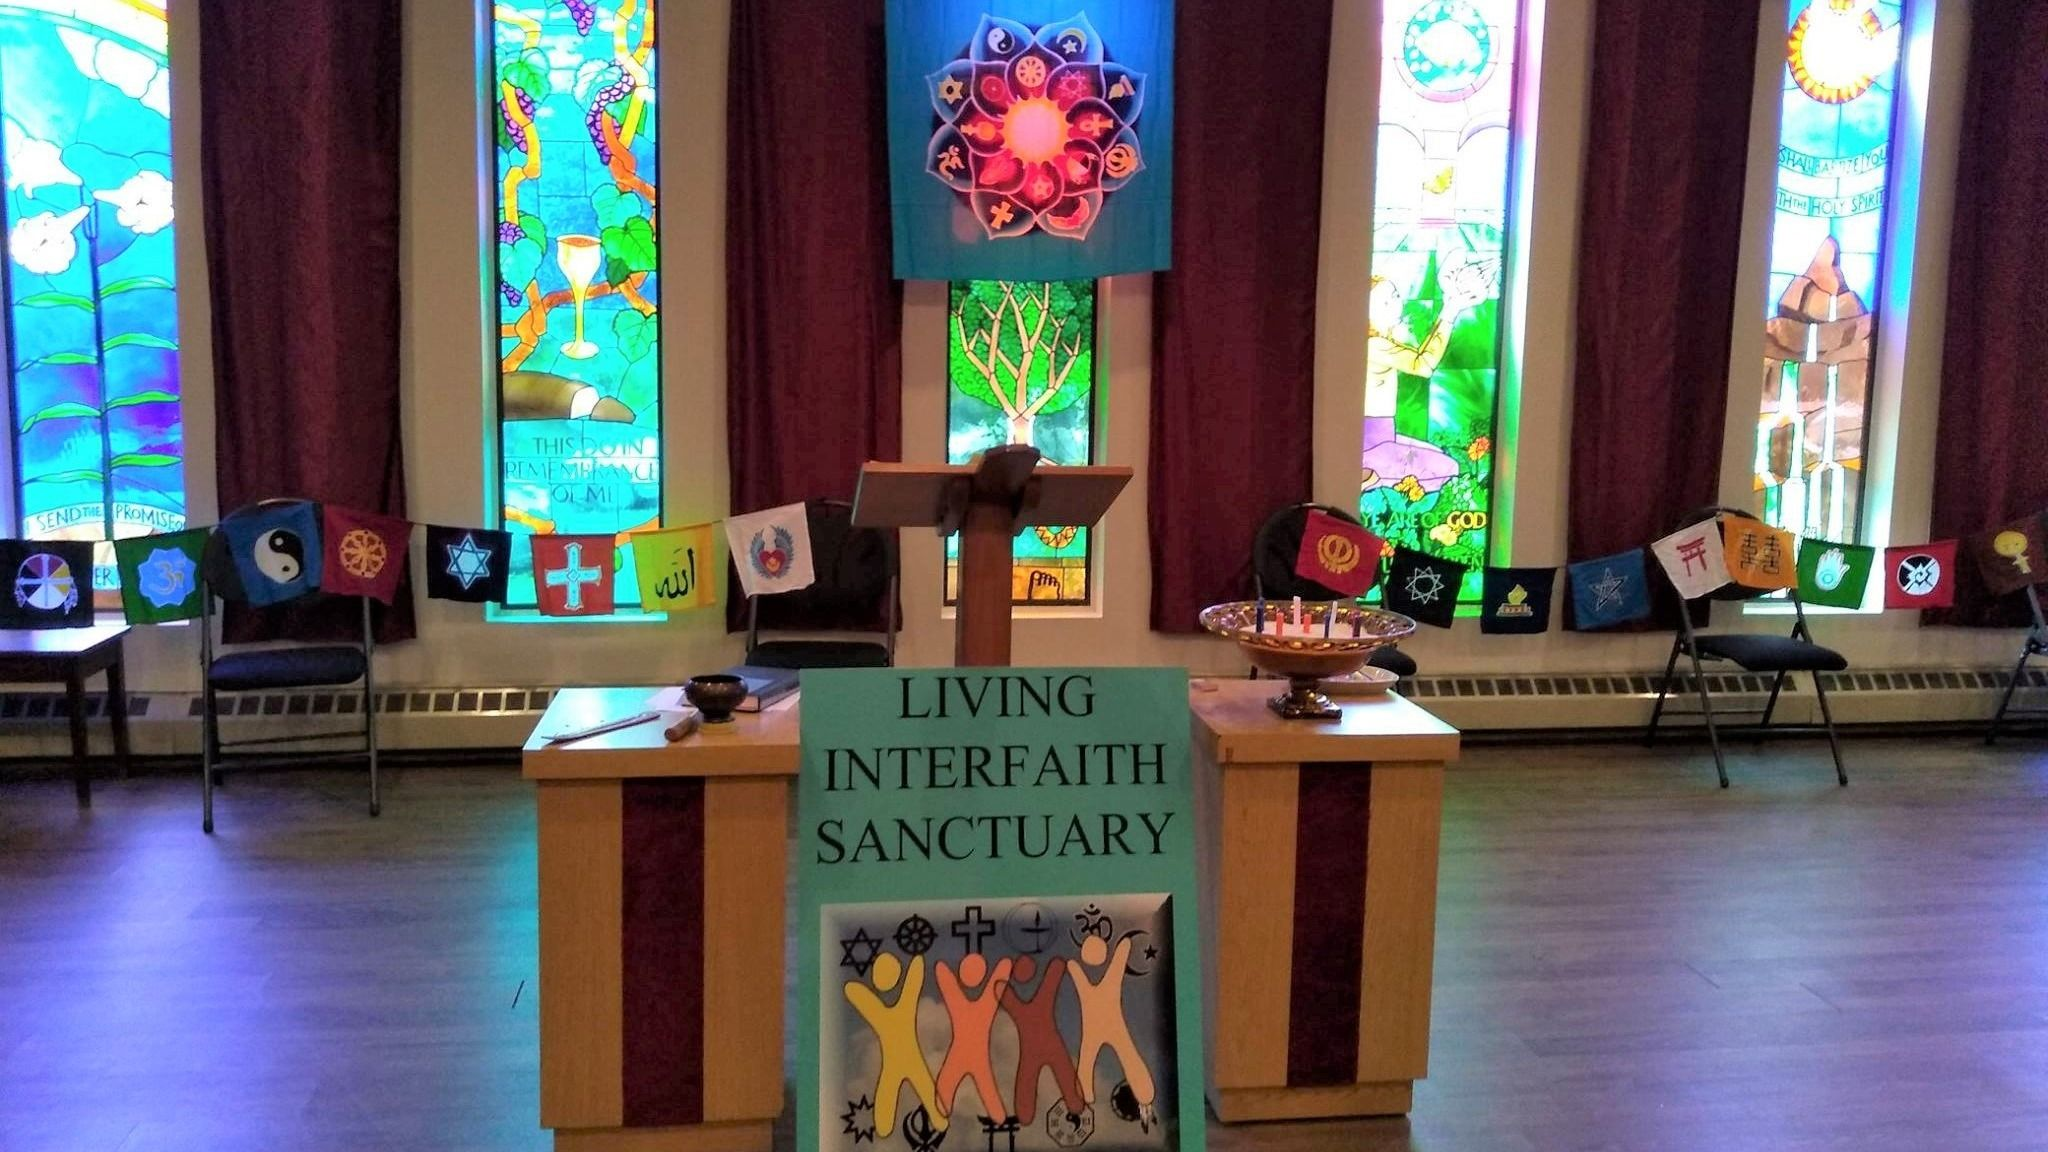 Living Interfaith Sanctuary